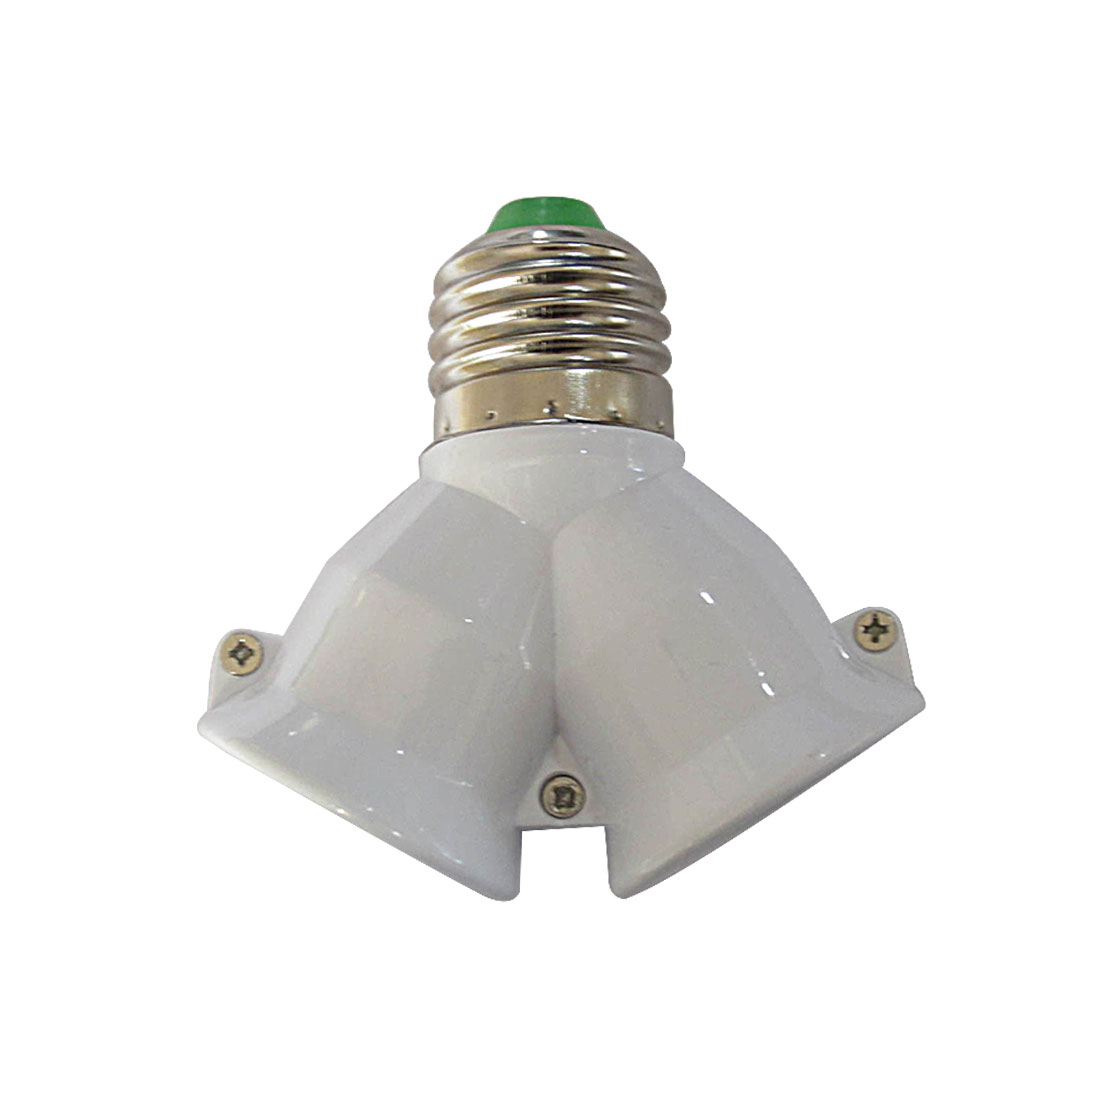 Light Lamp Bulb Holder Copper Contact Adapter Converter E27 To Double E27 Socket Base Extender Splitter Plug